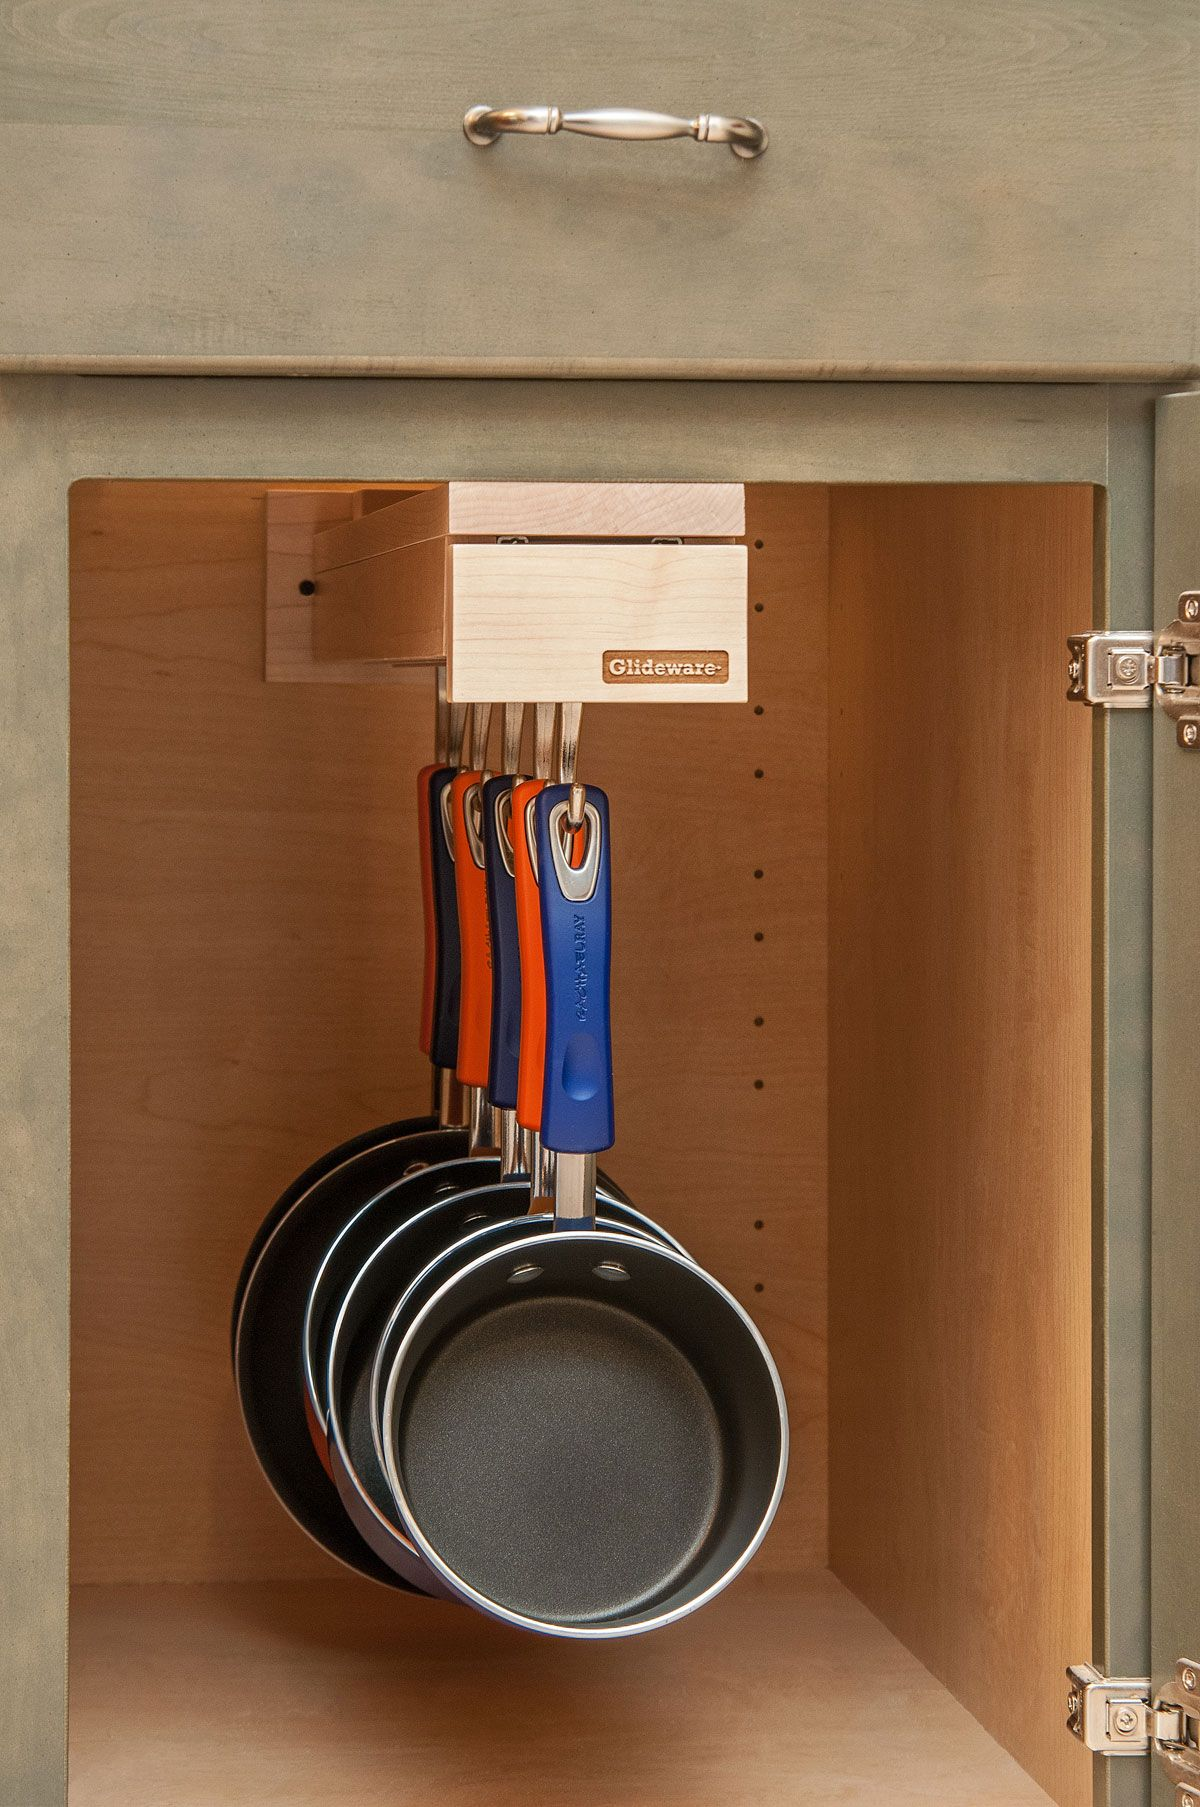 Flexible Features To Fit Any Need Install Glideware Into New Or Existing Cabinets Pull Out Kitchen Cabinet Rev A Shelf Base Cabinets